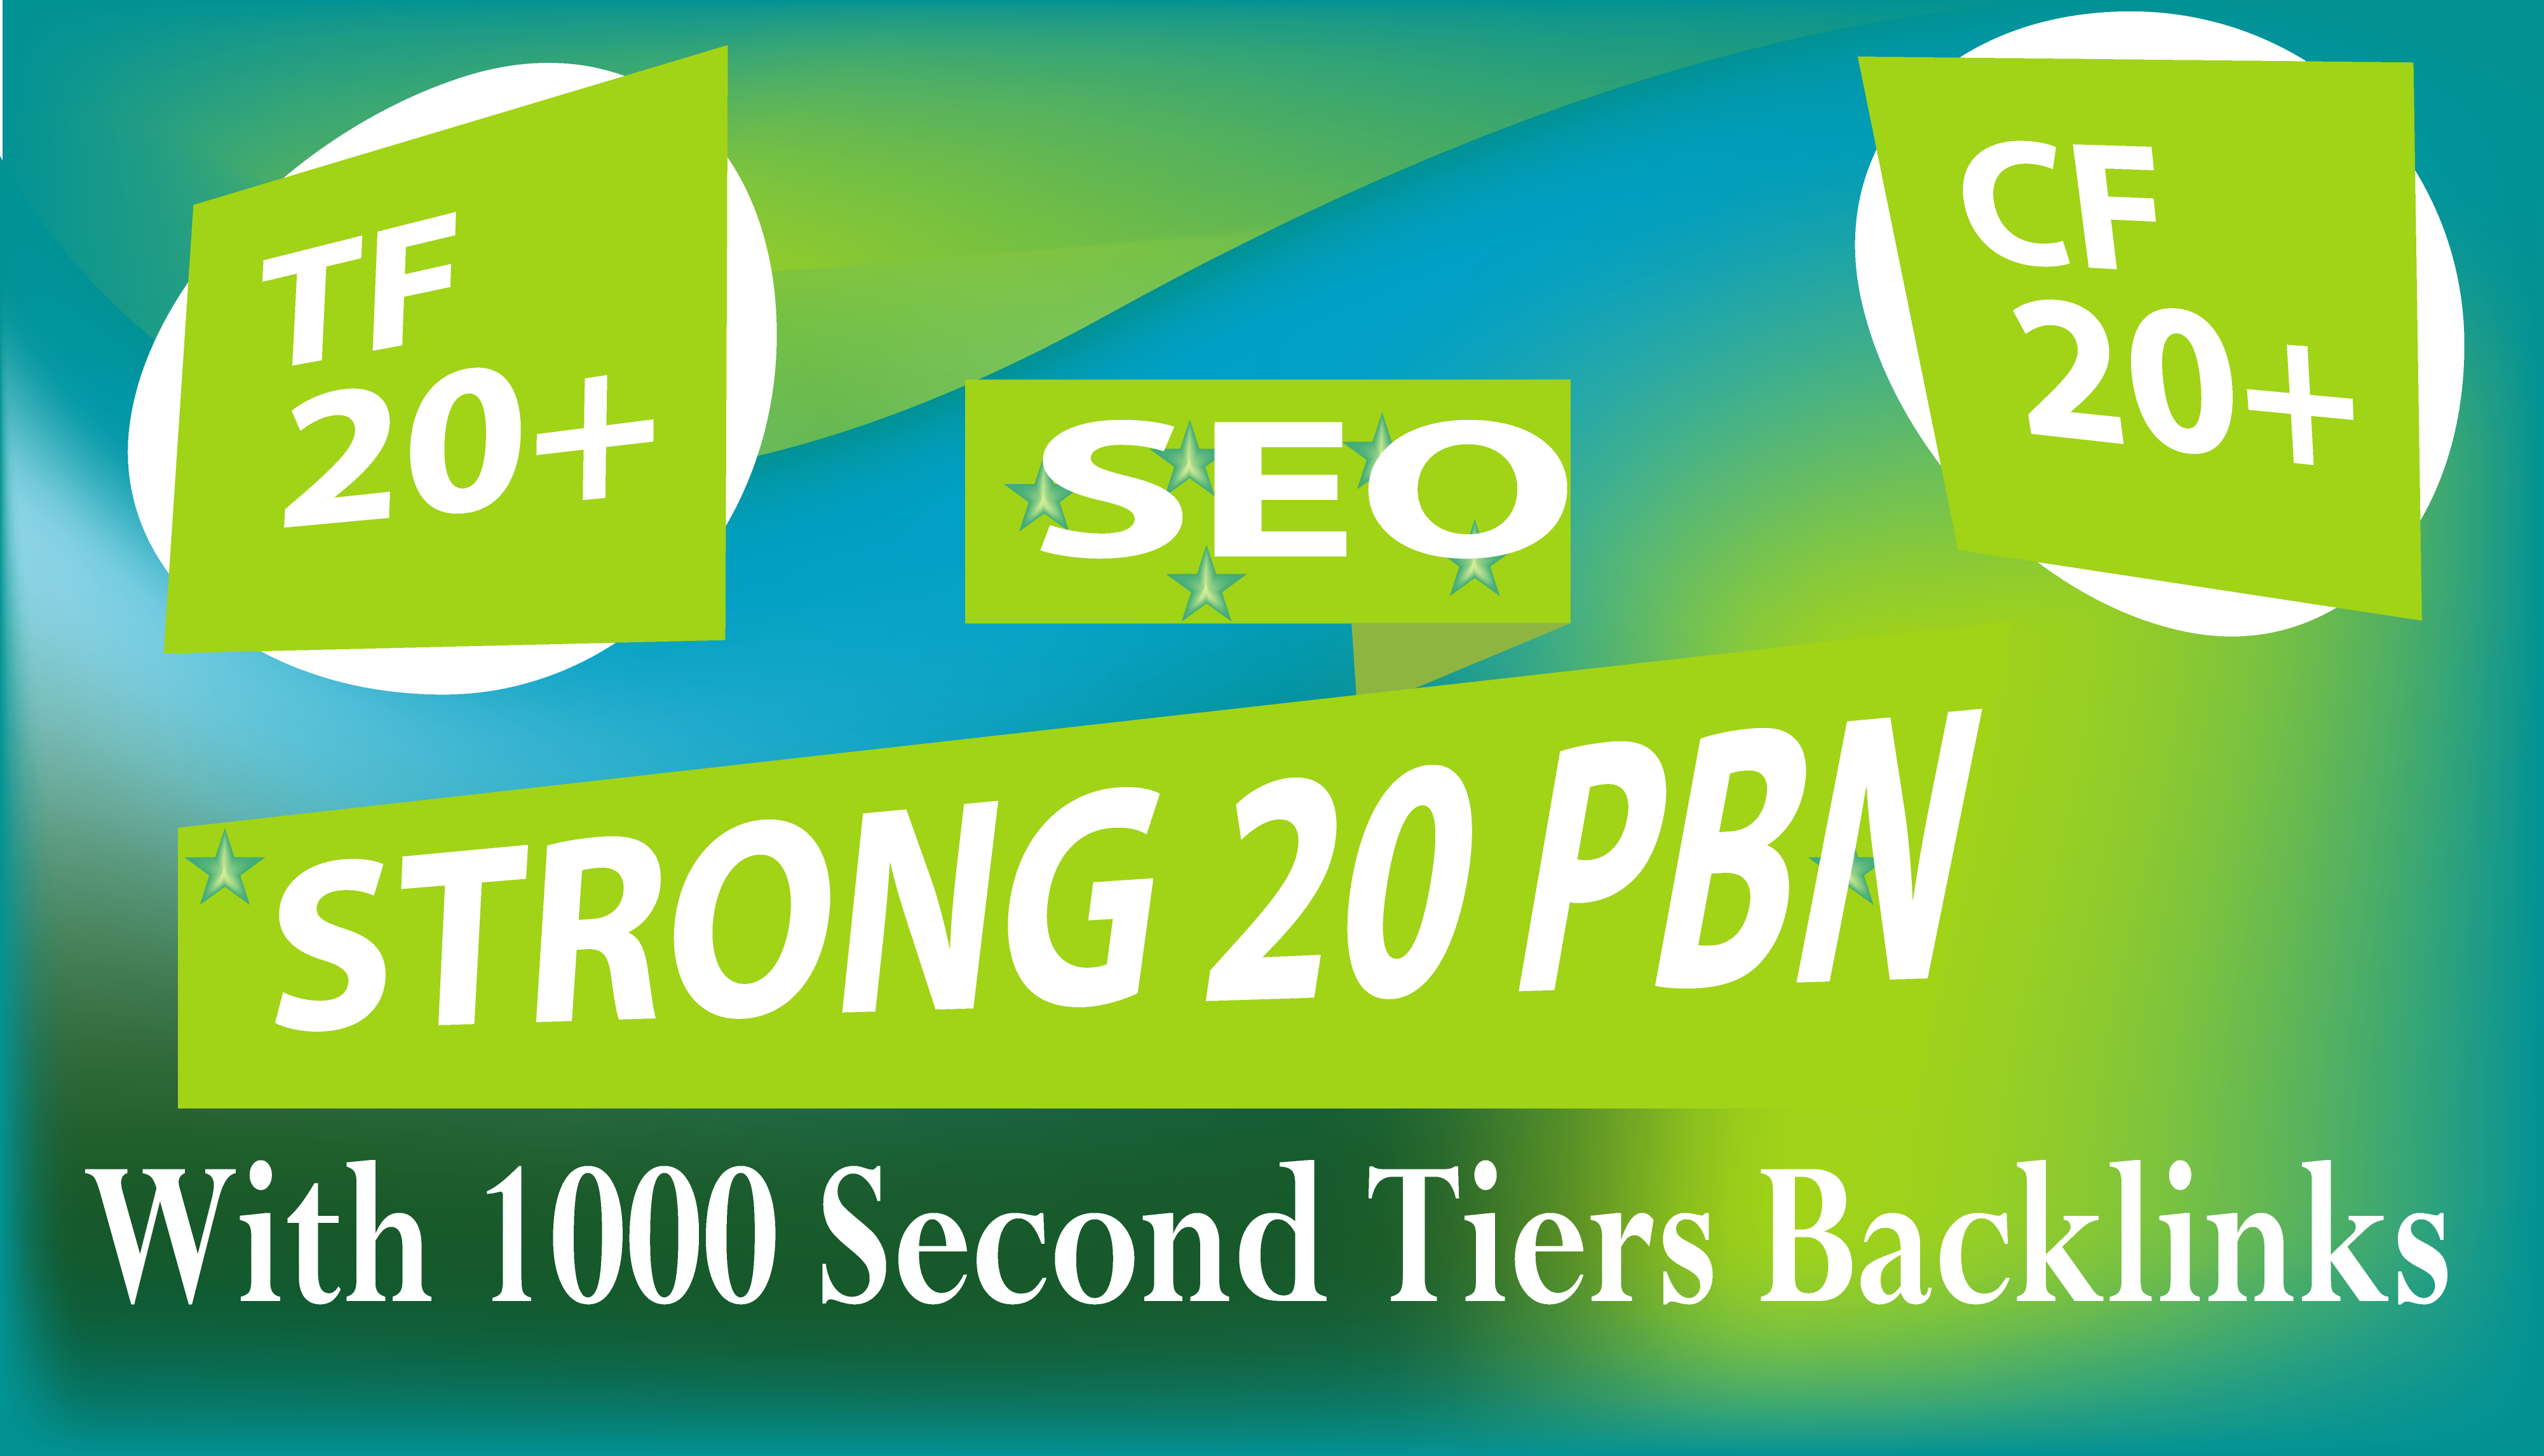 Create 20 Manual High Dofollow PBN With 1000 2nd Tiers Backlinks